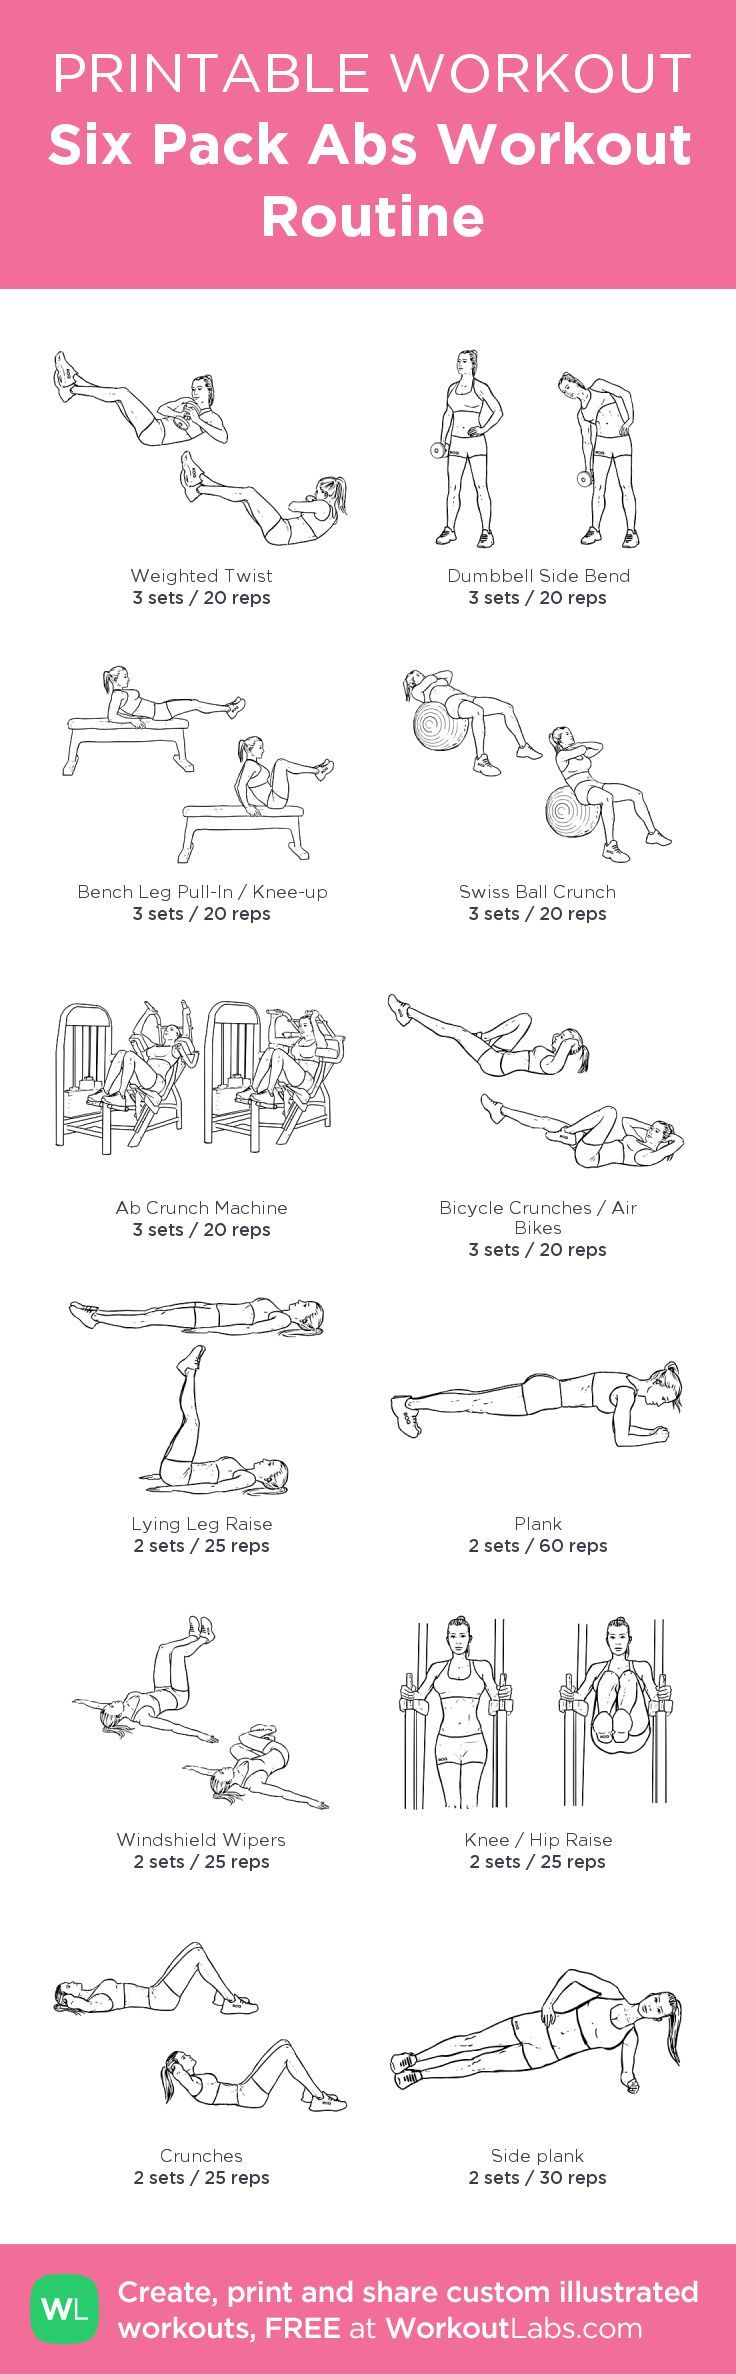 how to gain 6 pack abs fast